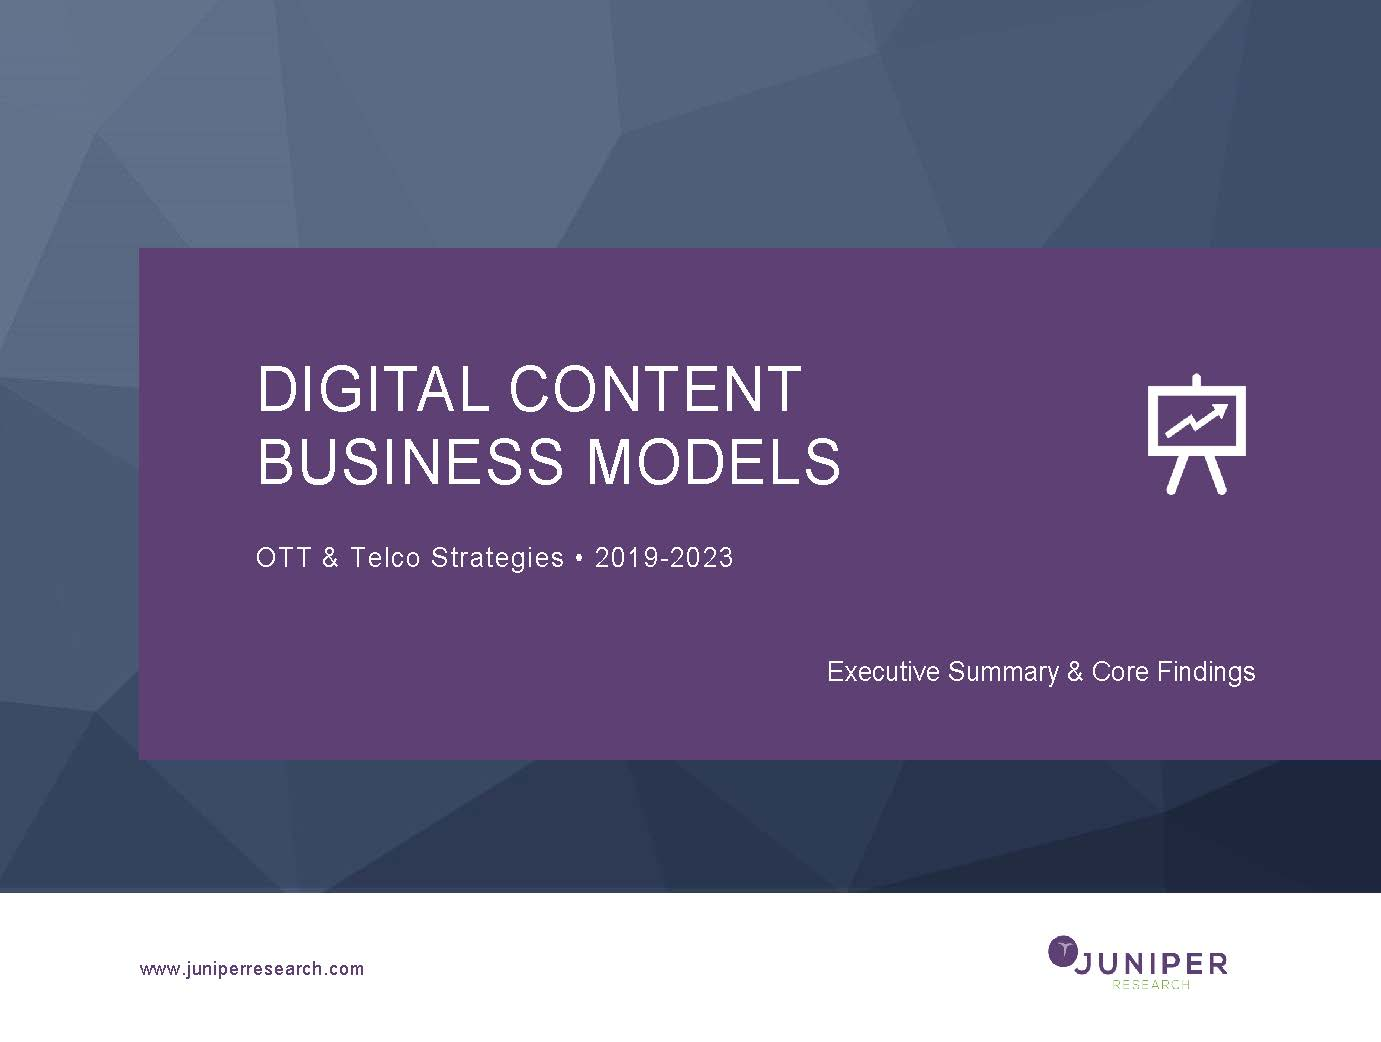 Digital Content Business Models - Executive Summary 2019-2023